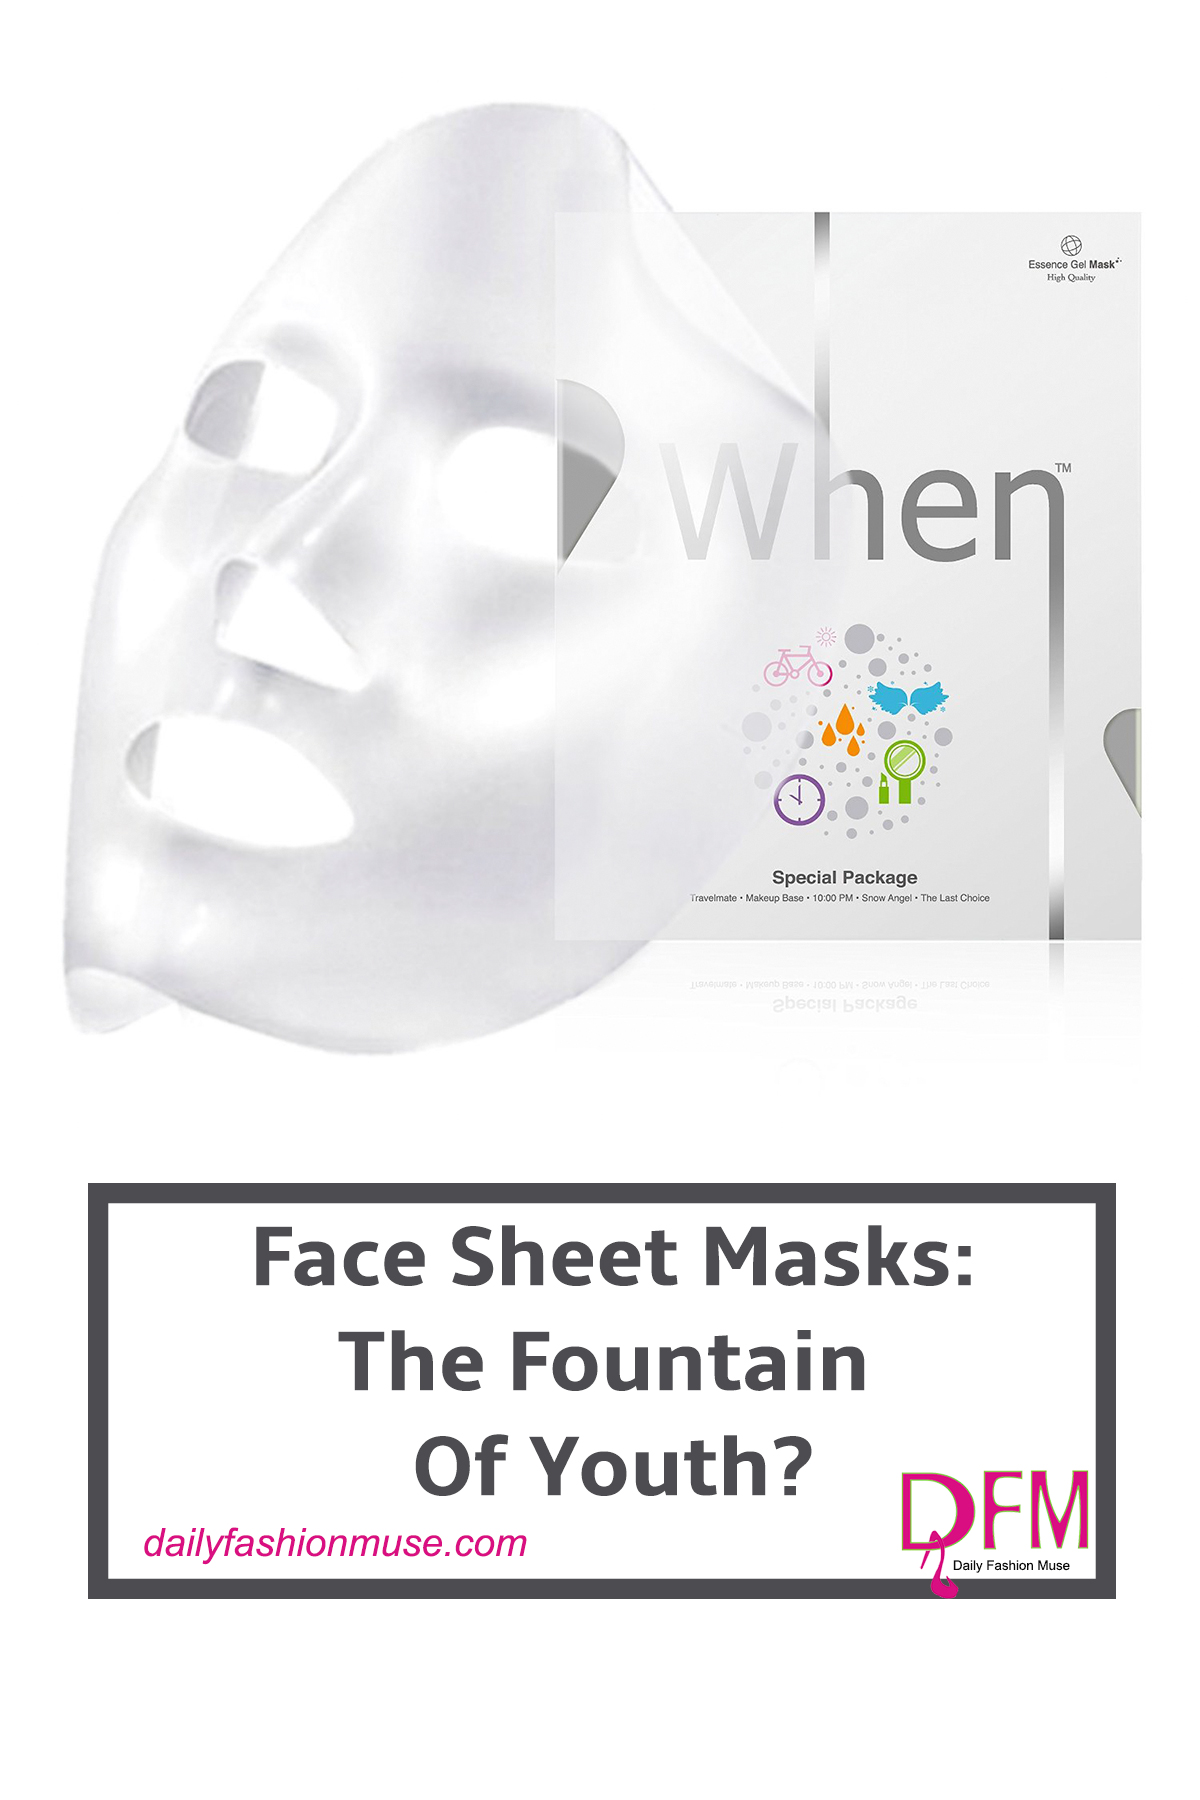 Face Sheet Masks The Fountain Of Youth Daily Fashion Muse